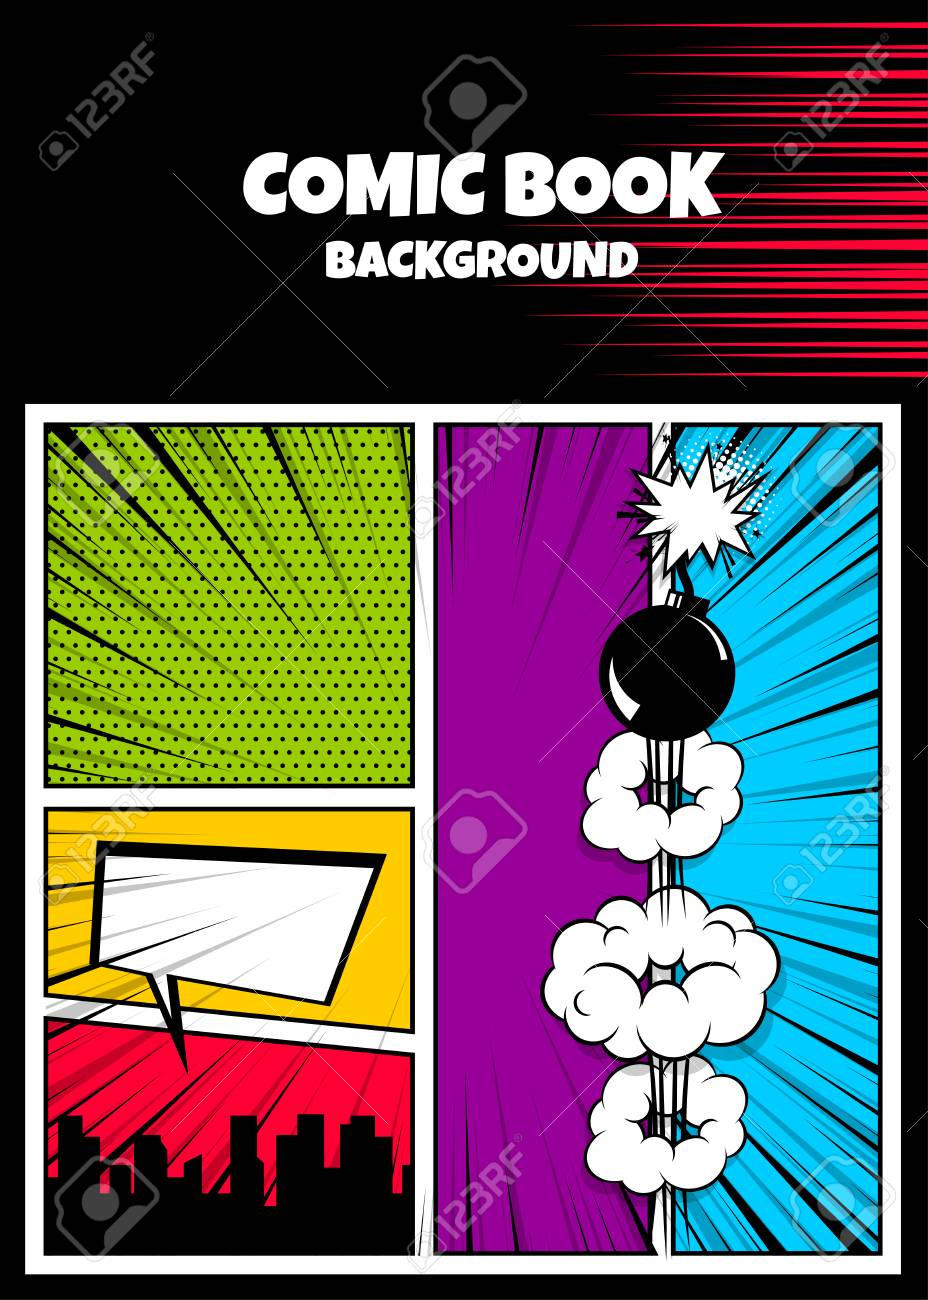 pop art comic book cover template royalty free cliparts vetores e